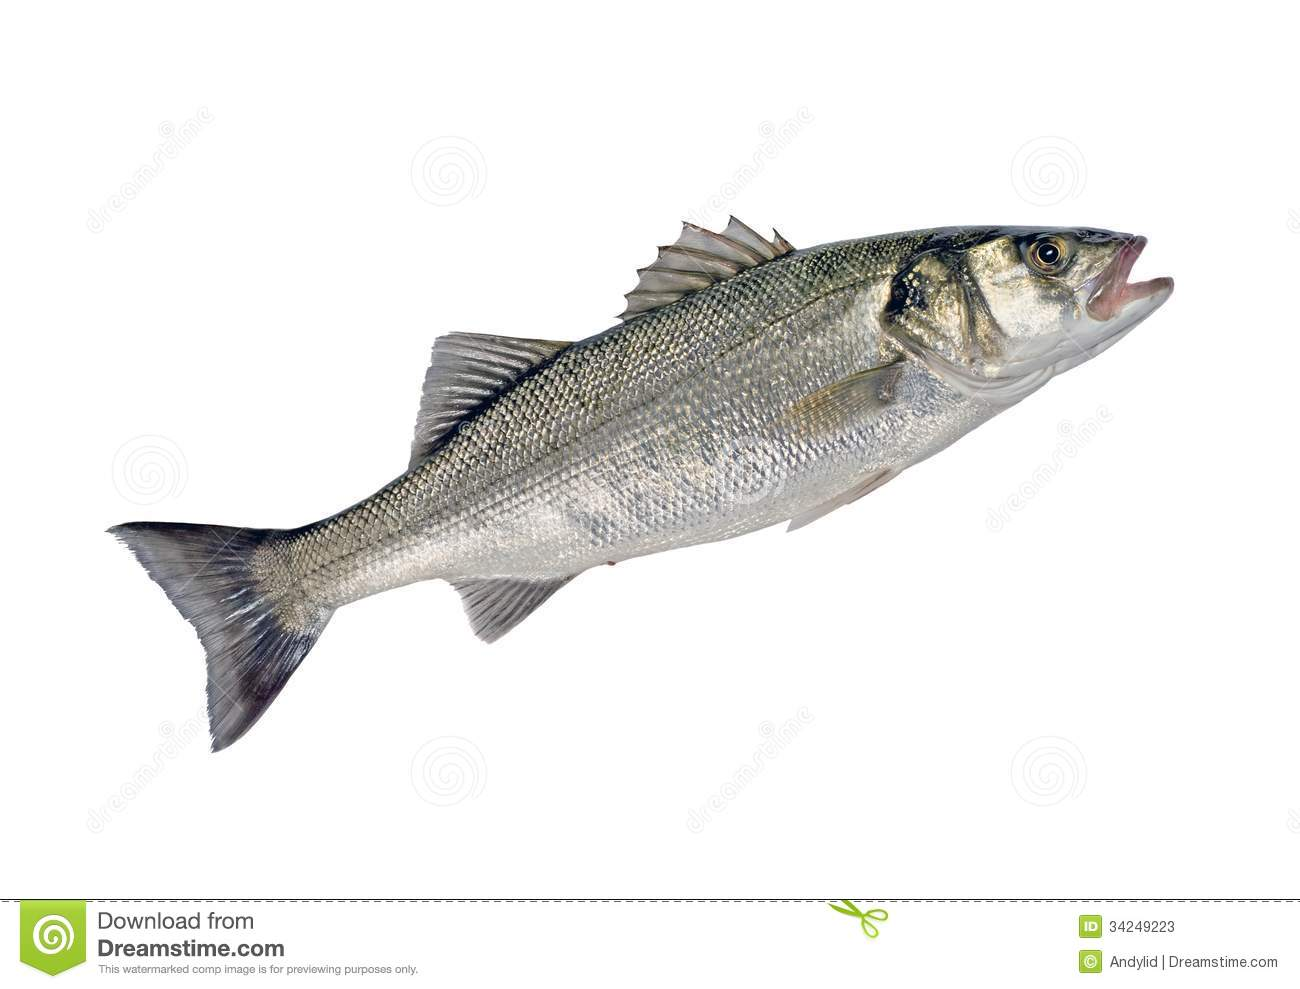 Sea bass fish stock photos image 34249223 for Bass fish images